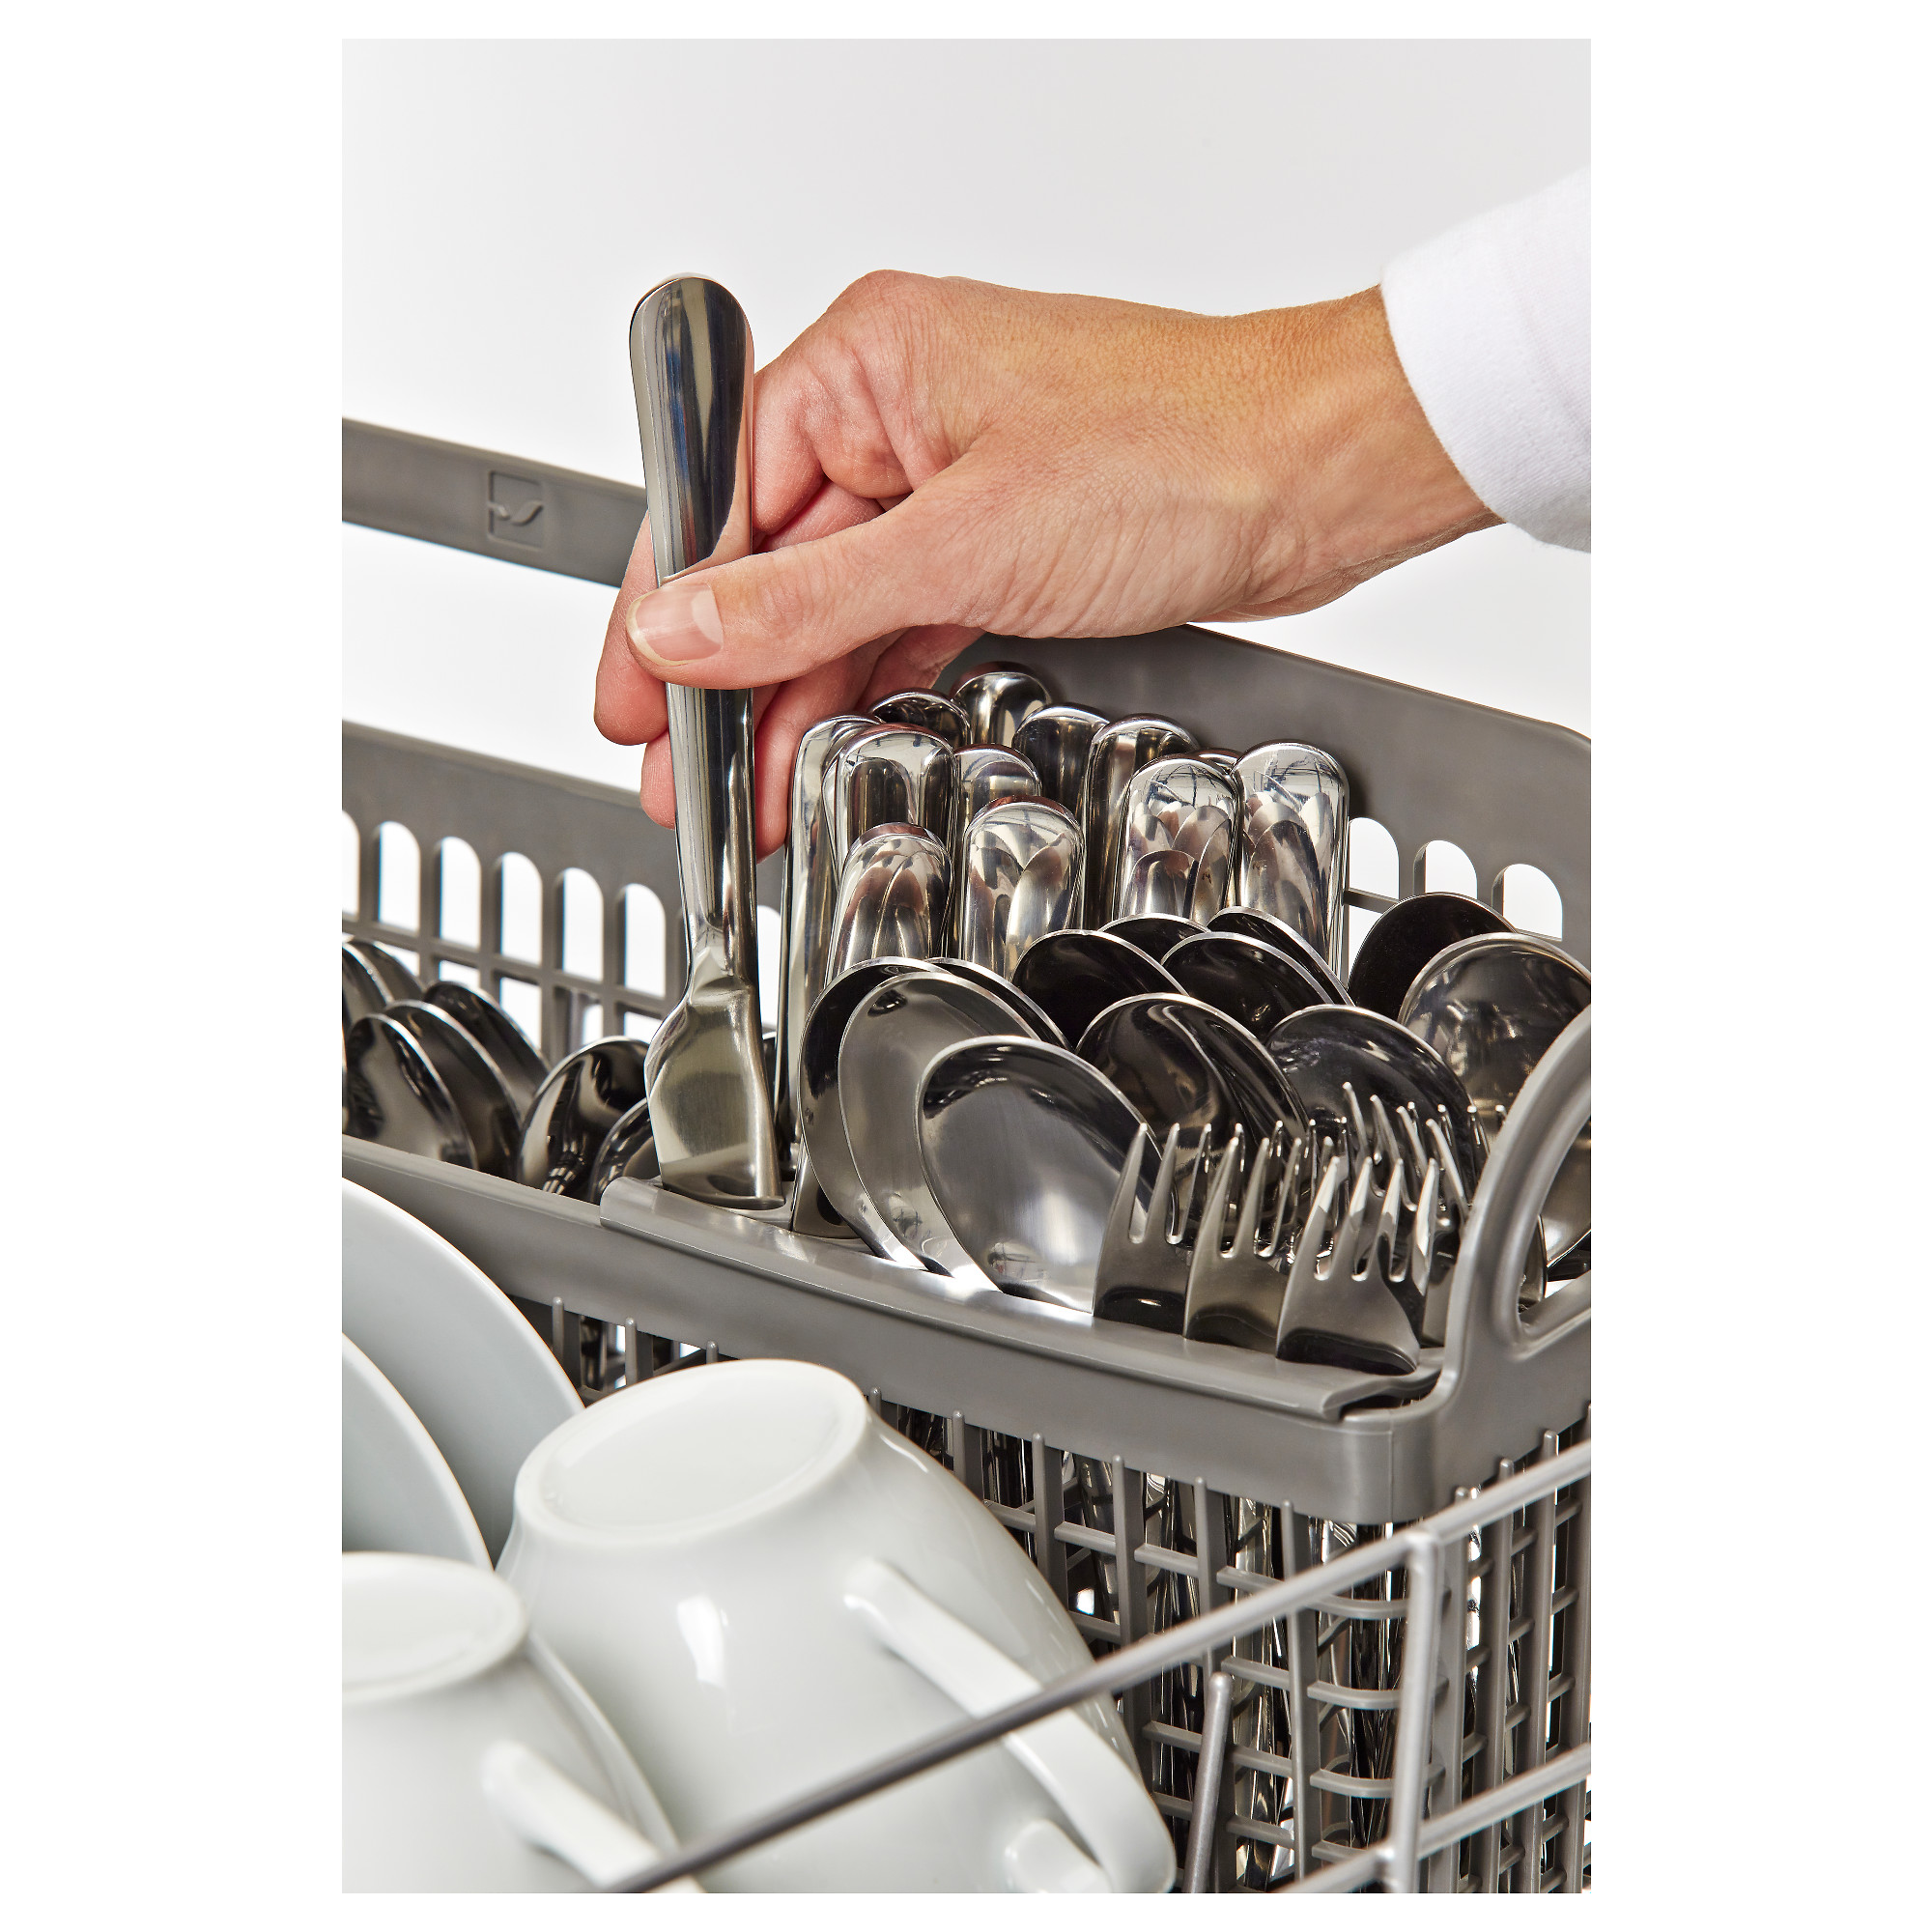 countertop steel reviews built fully dishwasher stainless in integrated monogram product